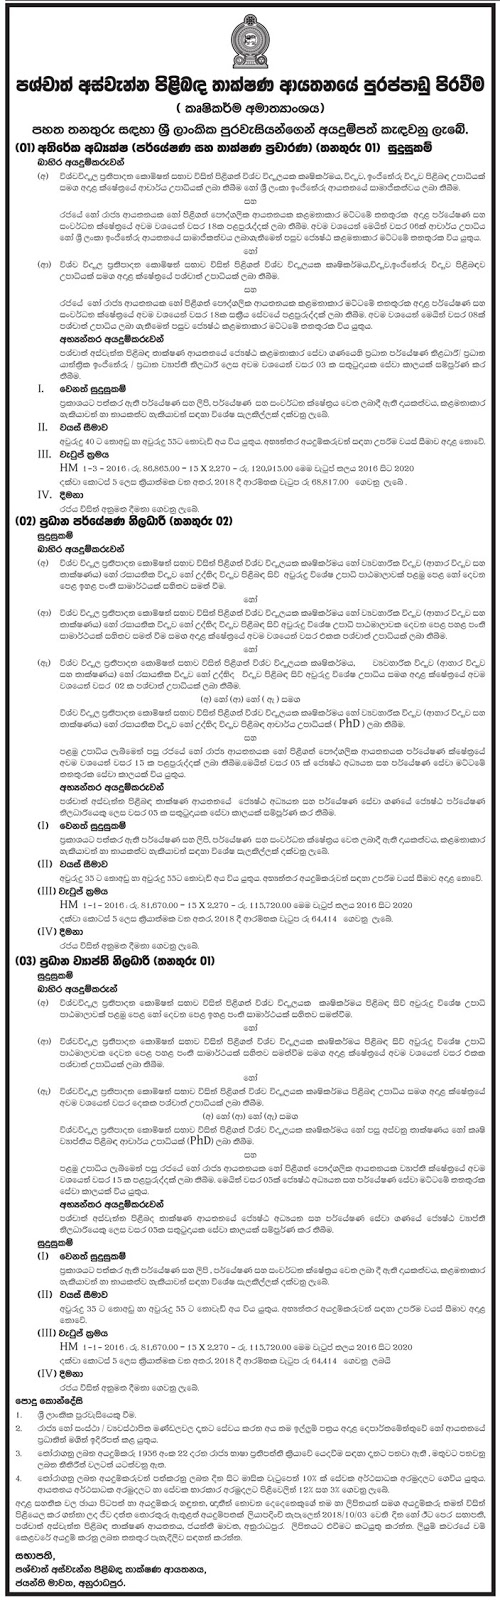 Additional Director - Chief Research Officer - Chief Extension Officer -  Ministry of Agriculture